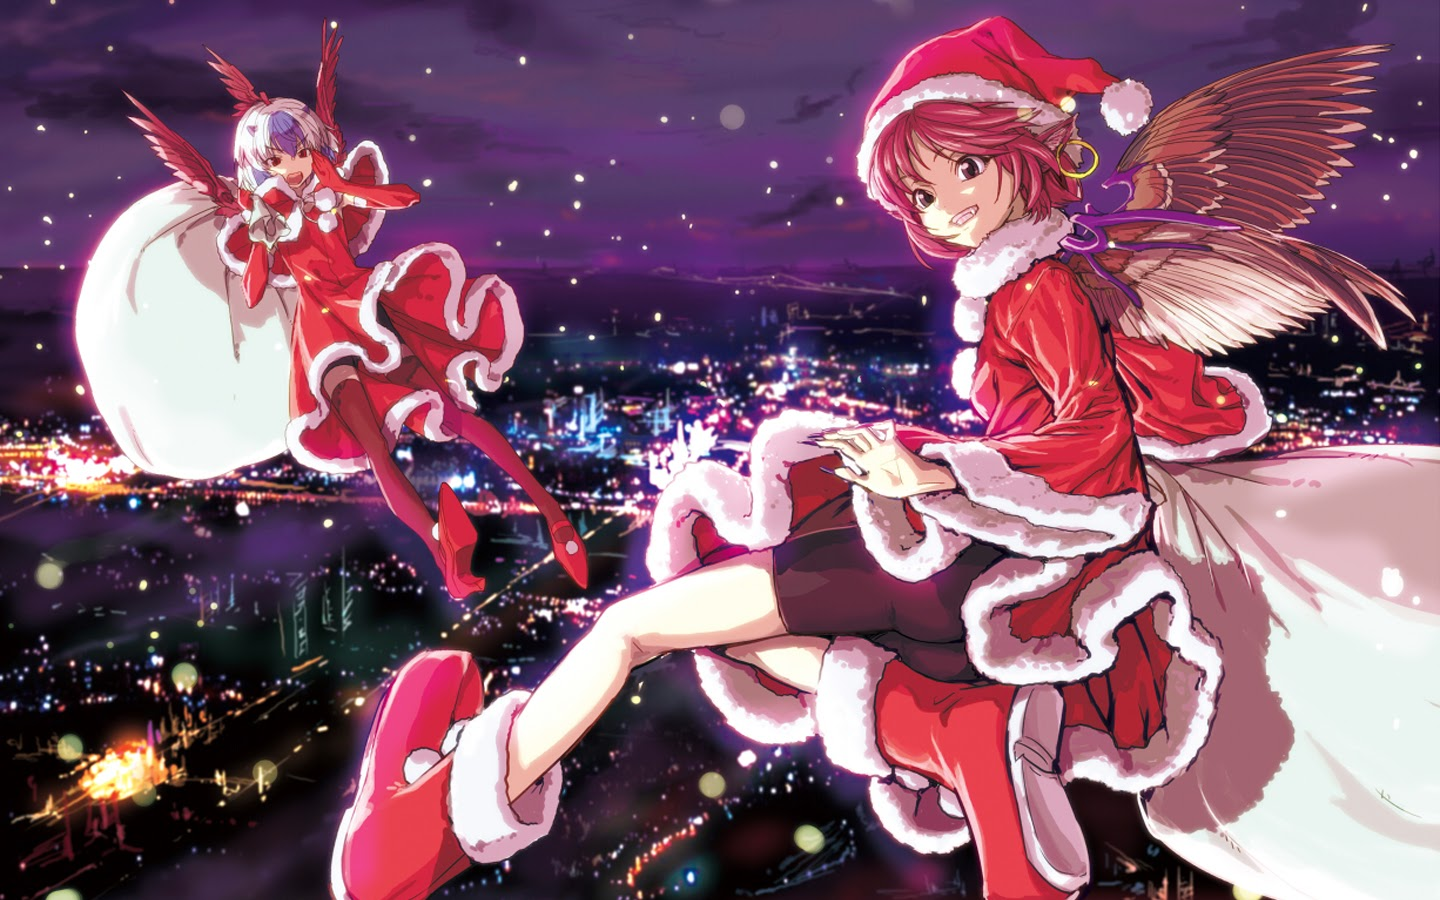 Anime Christmas Girls 18 Background Wallpaper - Animewp.com